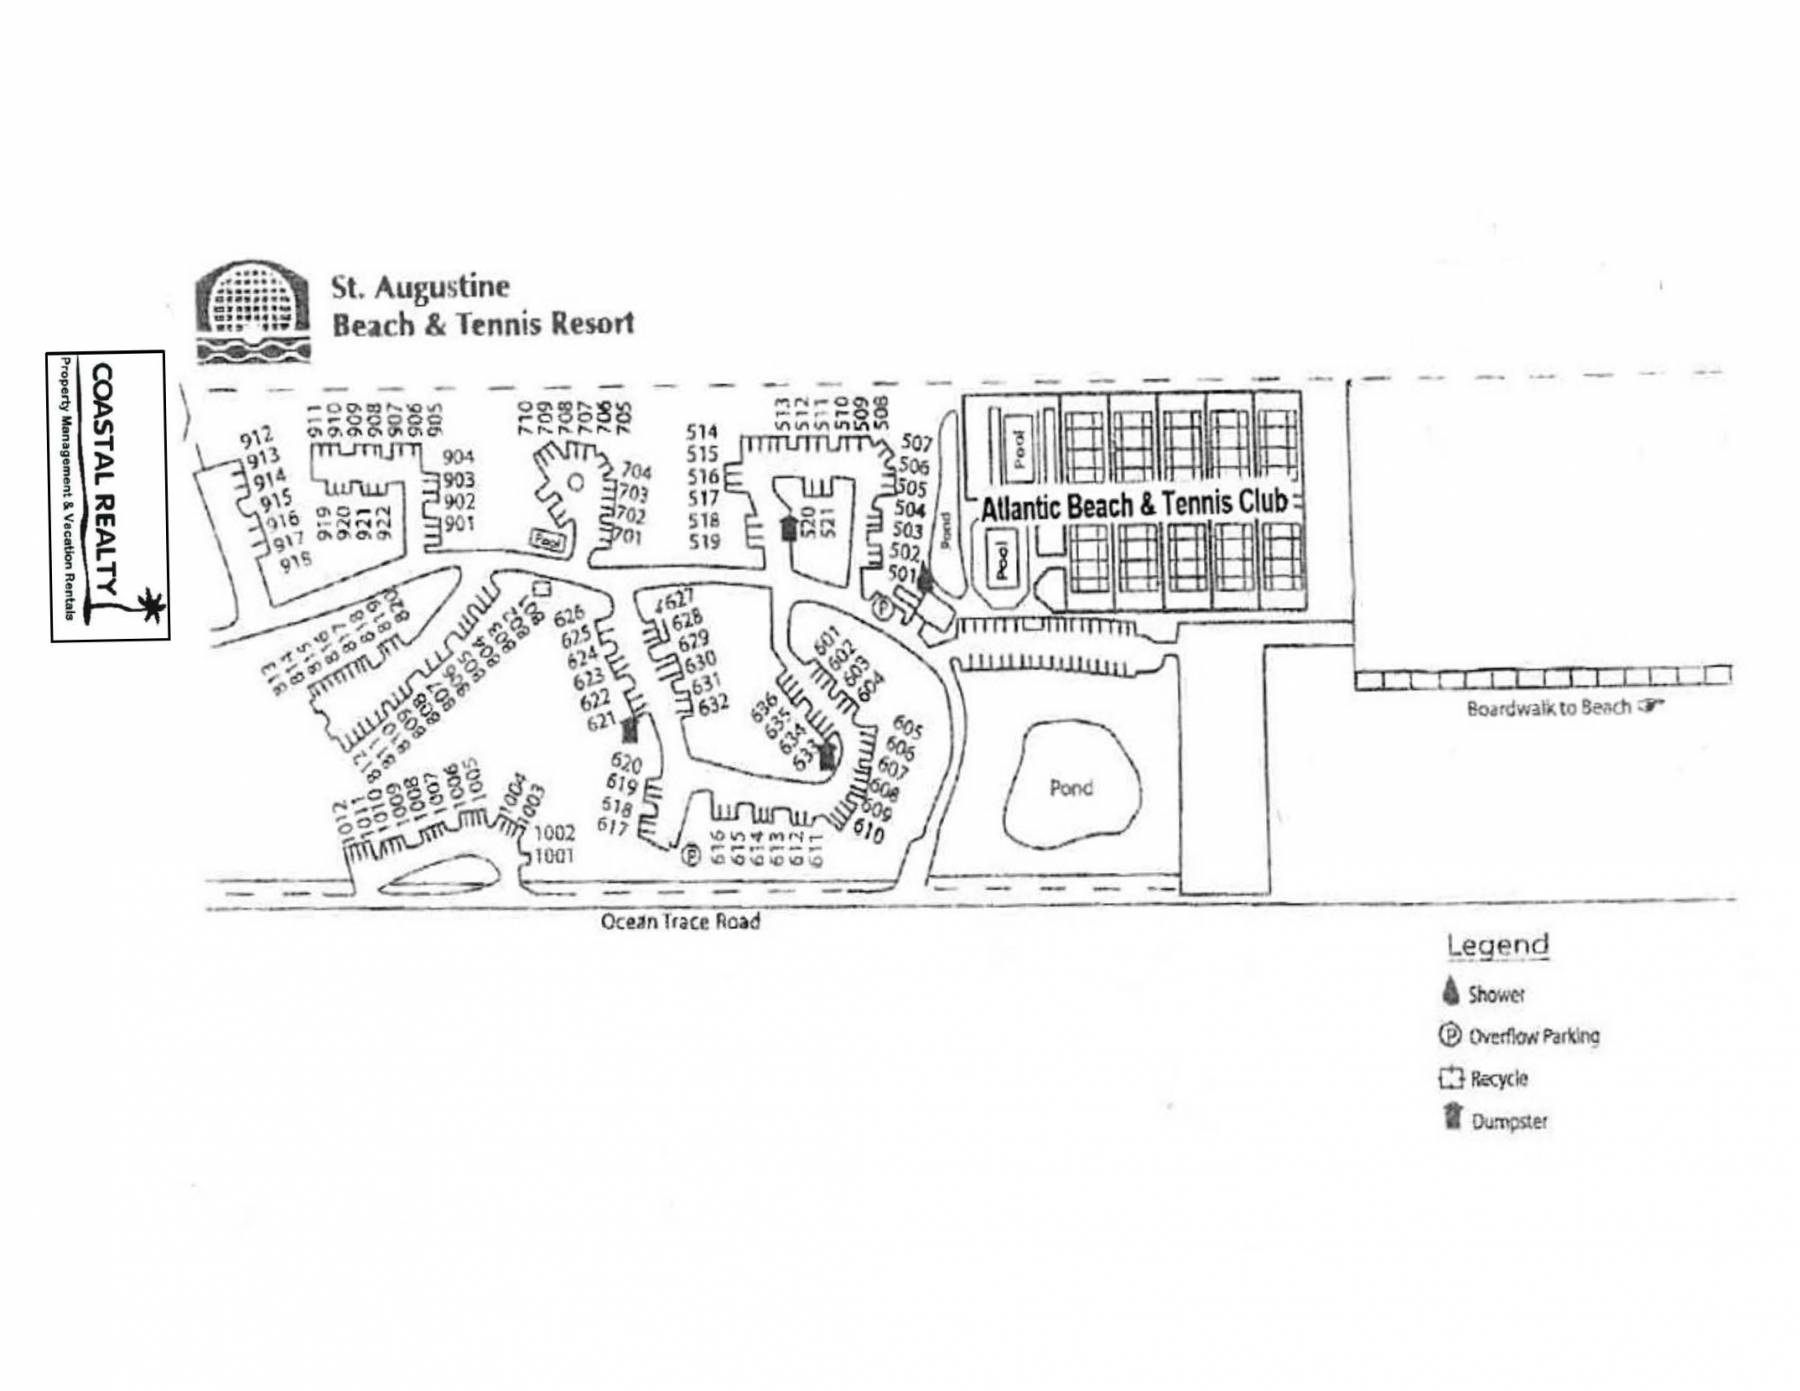 st augustine beach and tennis resort map